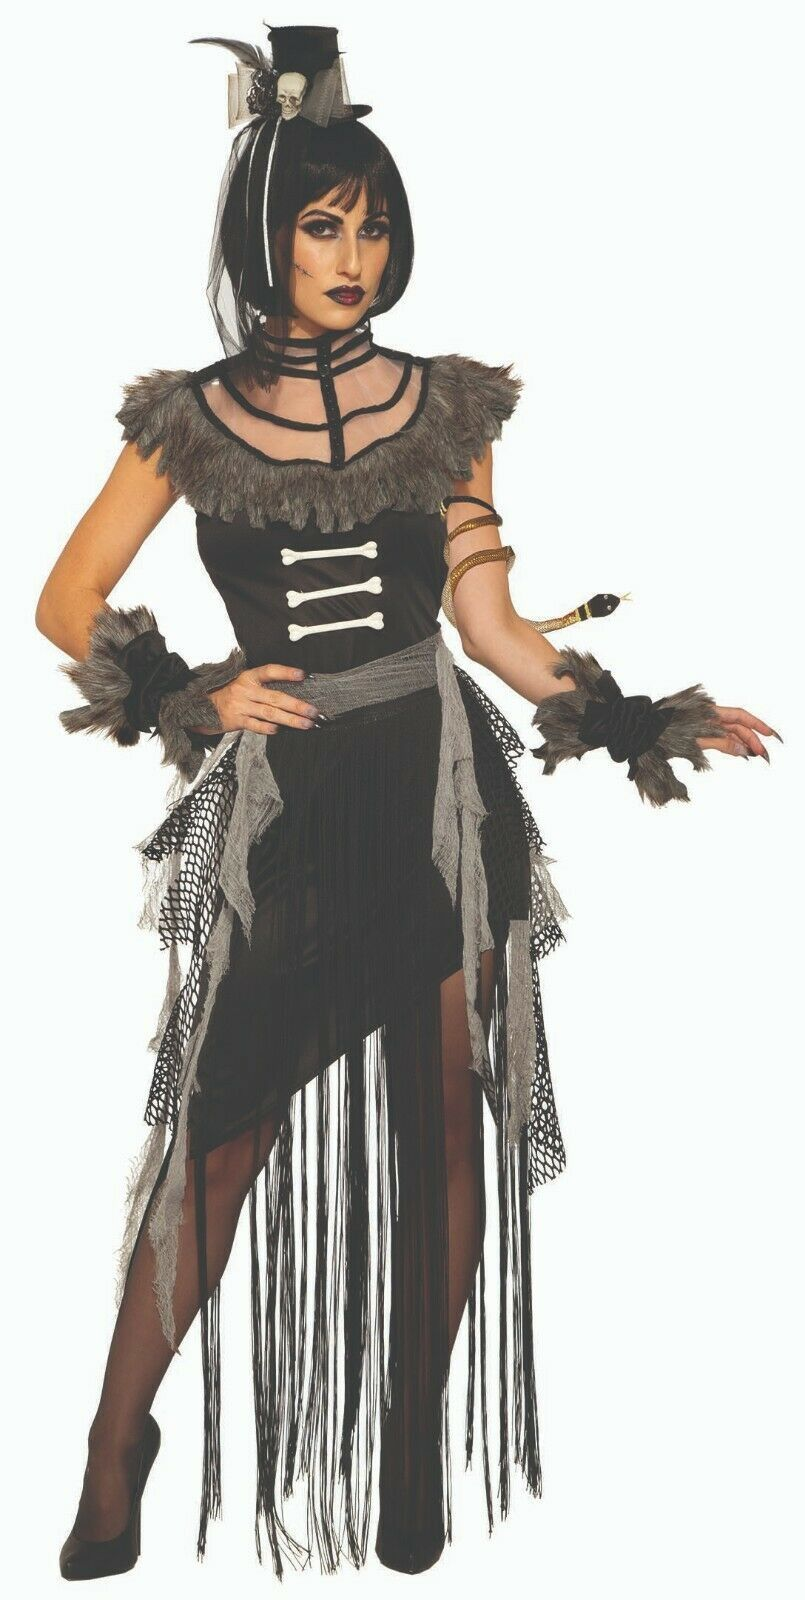 Primary image for Forum Novelties Madame Hex Voodoo Witch Doctor Adult Halloween Costume 83342